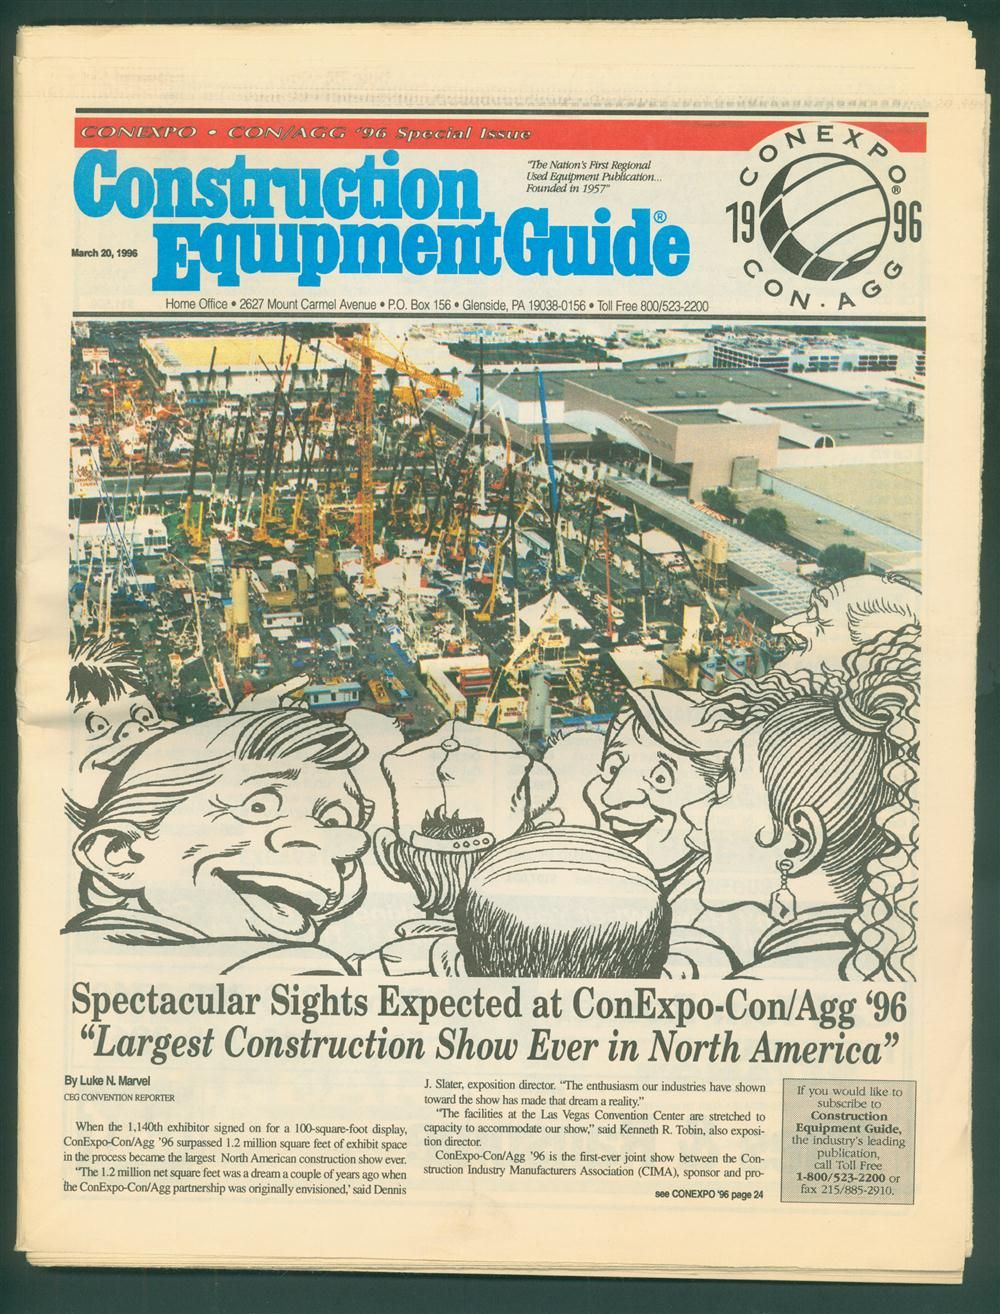 The 1996 ConExpo-Con/Agg show was the largest American construction show ever put together at the time.